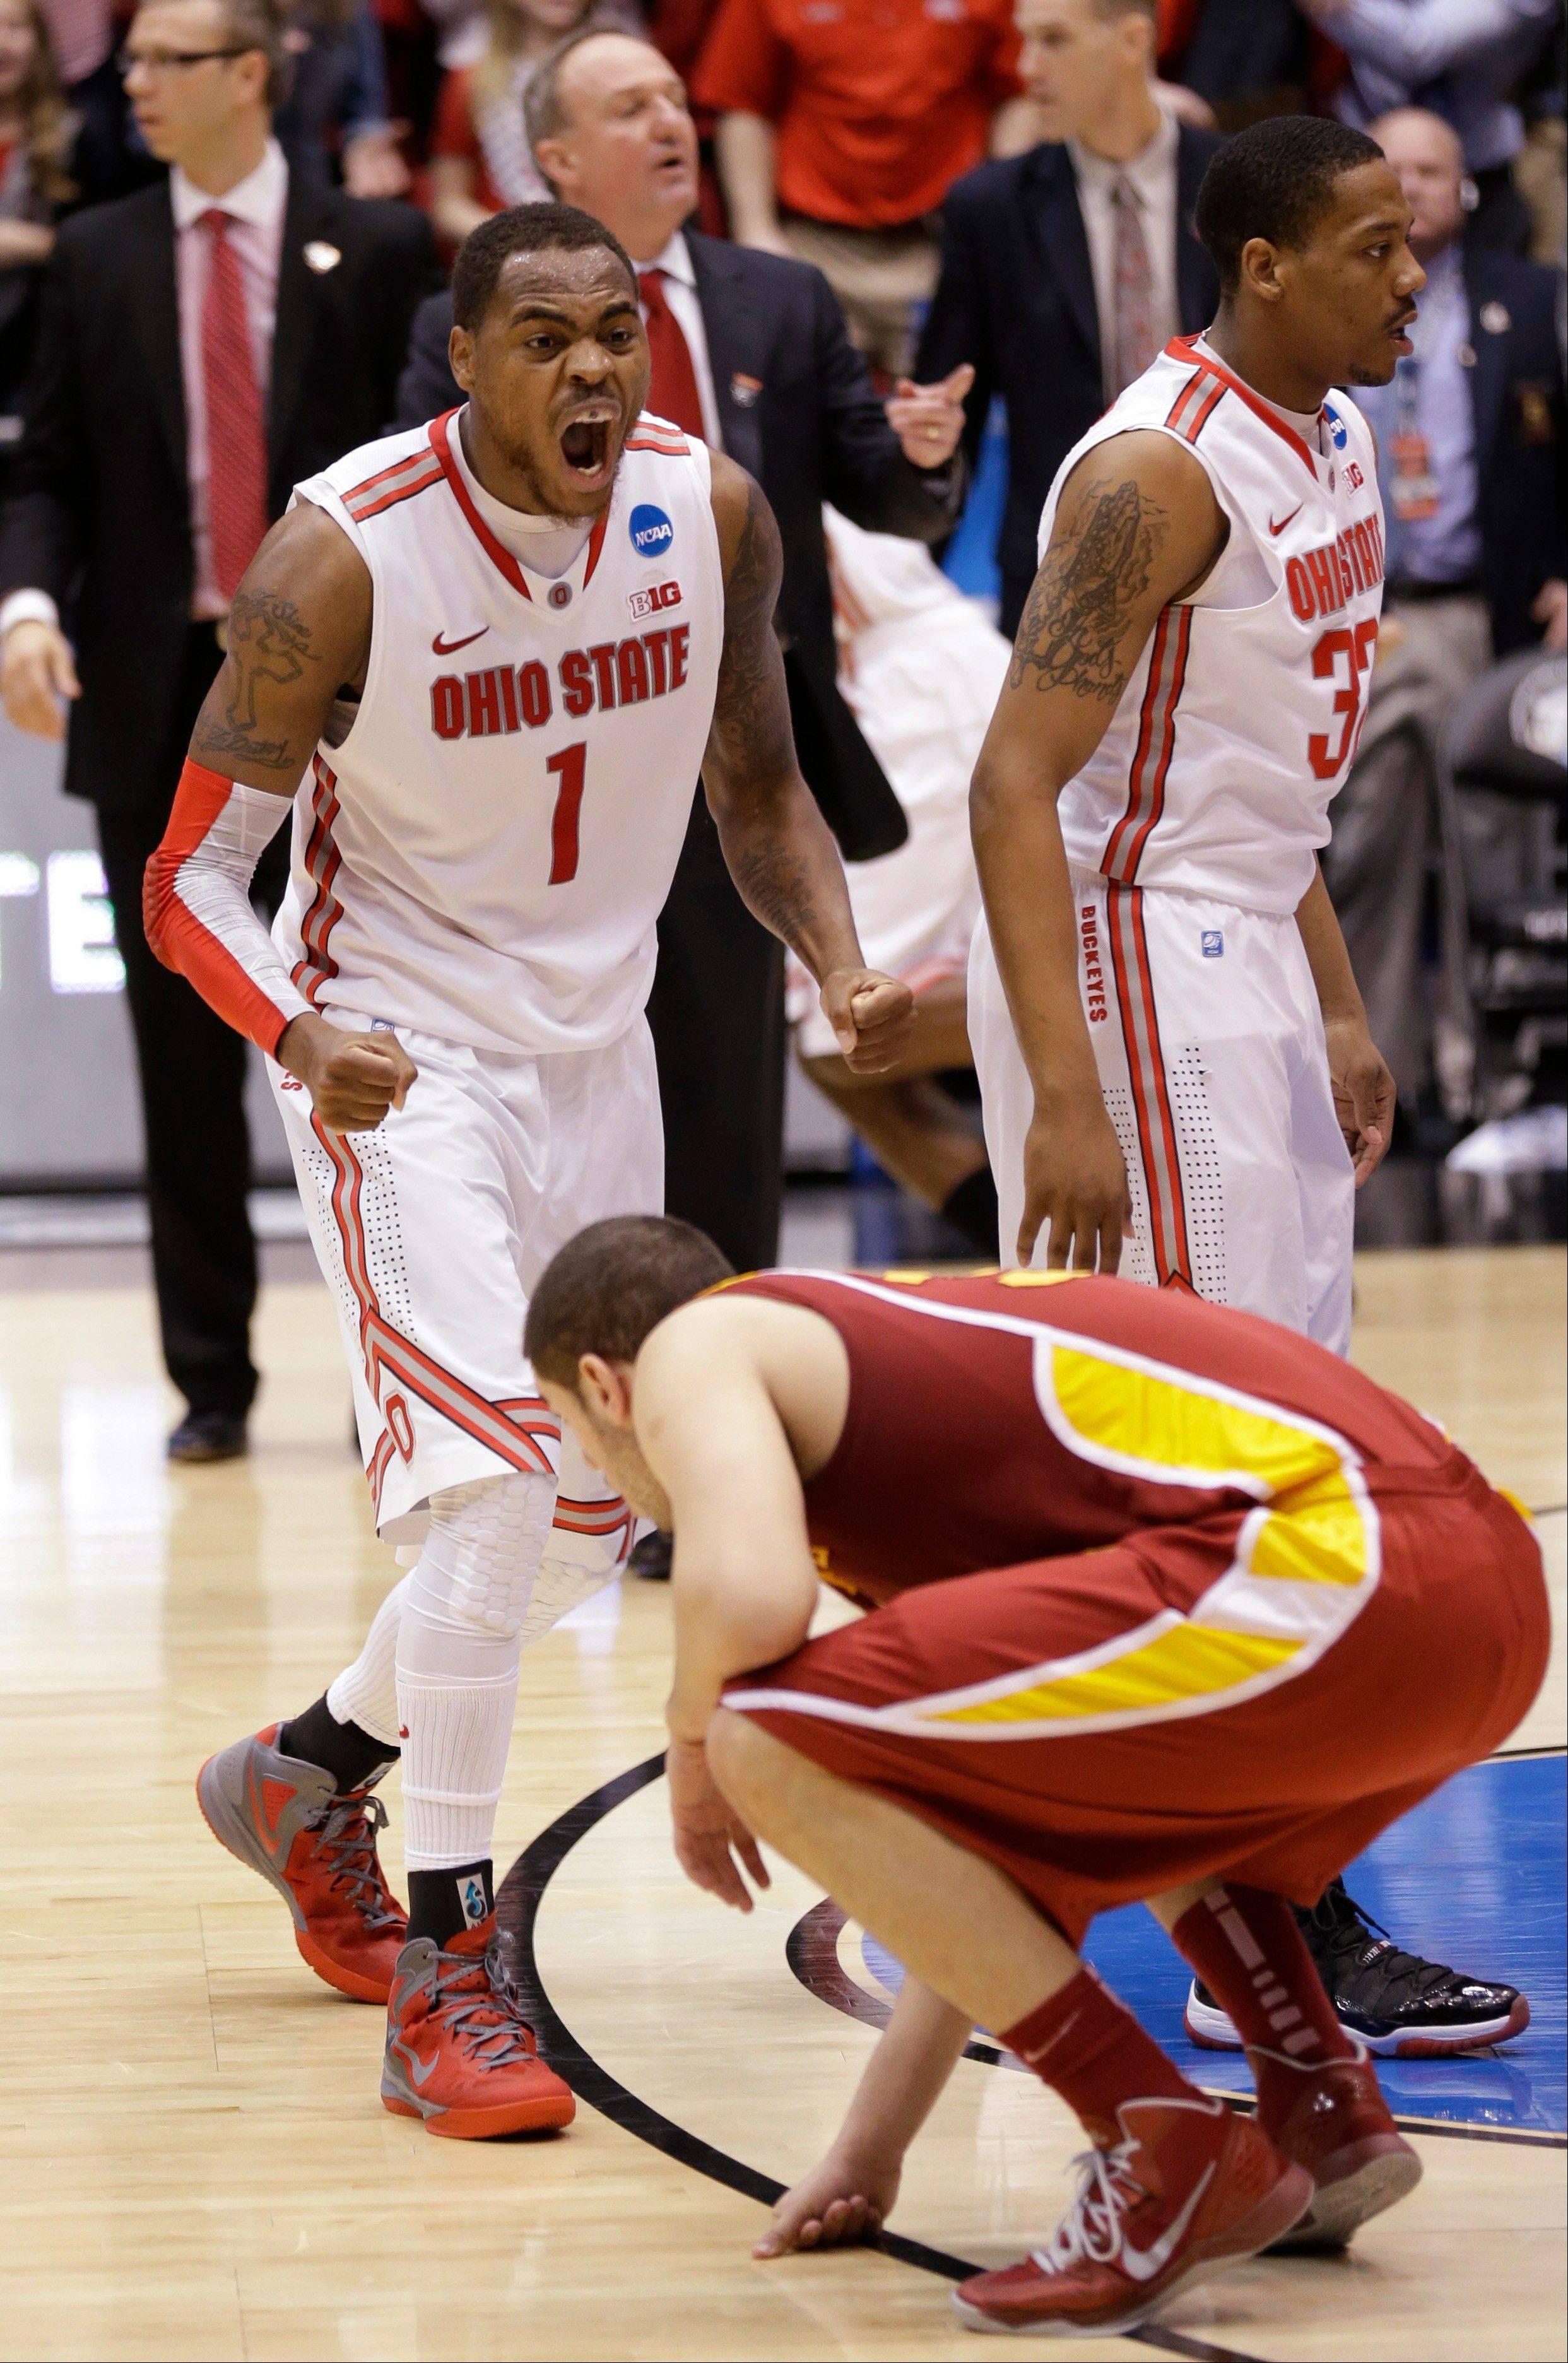 Ohio State hits late 3-pointer to beat Iowa State